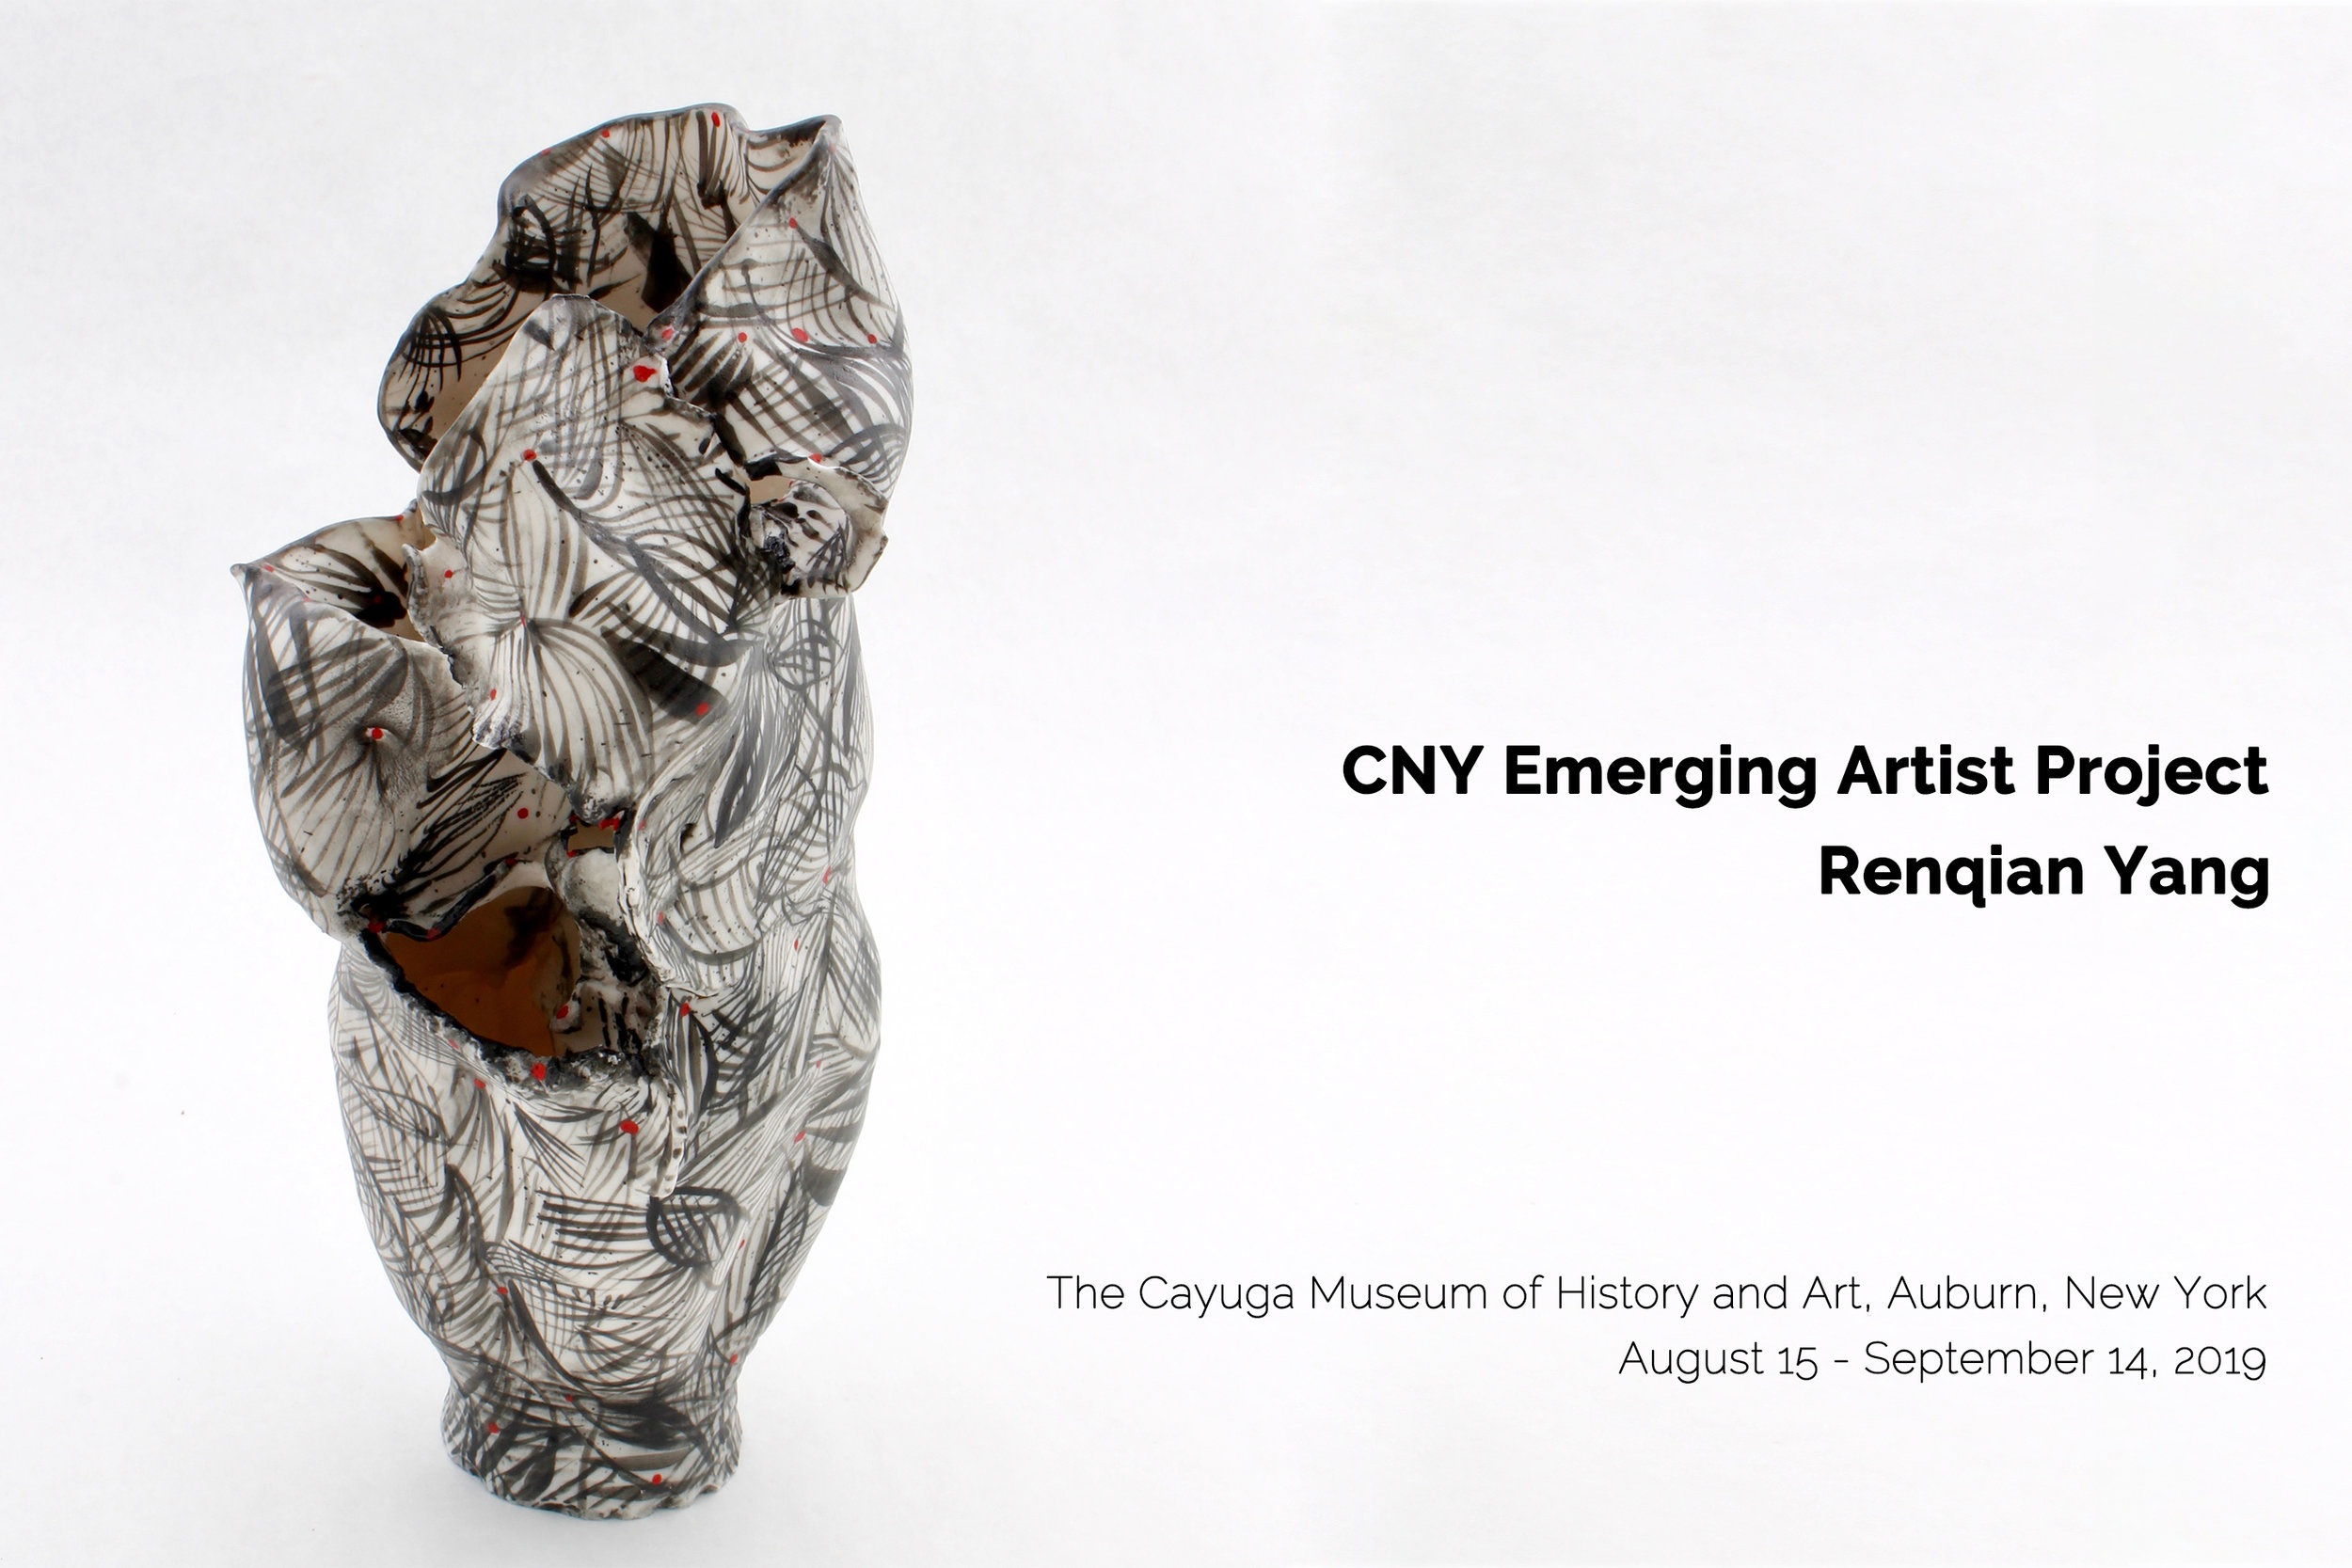 Renqian Yang's Solo Exhibition at Cayuga Museum of History and Art    Exhibition Time : August 15-September 14, 2019   Location : Cayuga Museum of History and Art, 203 Genesee St, Auburn, New York.